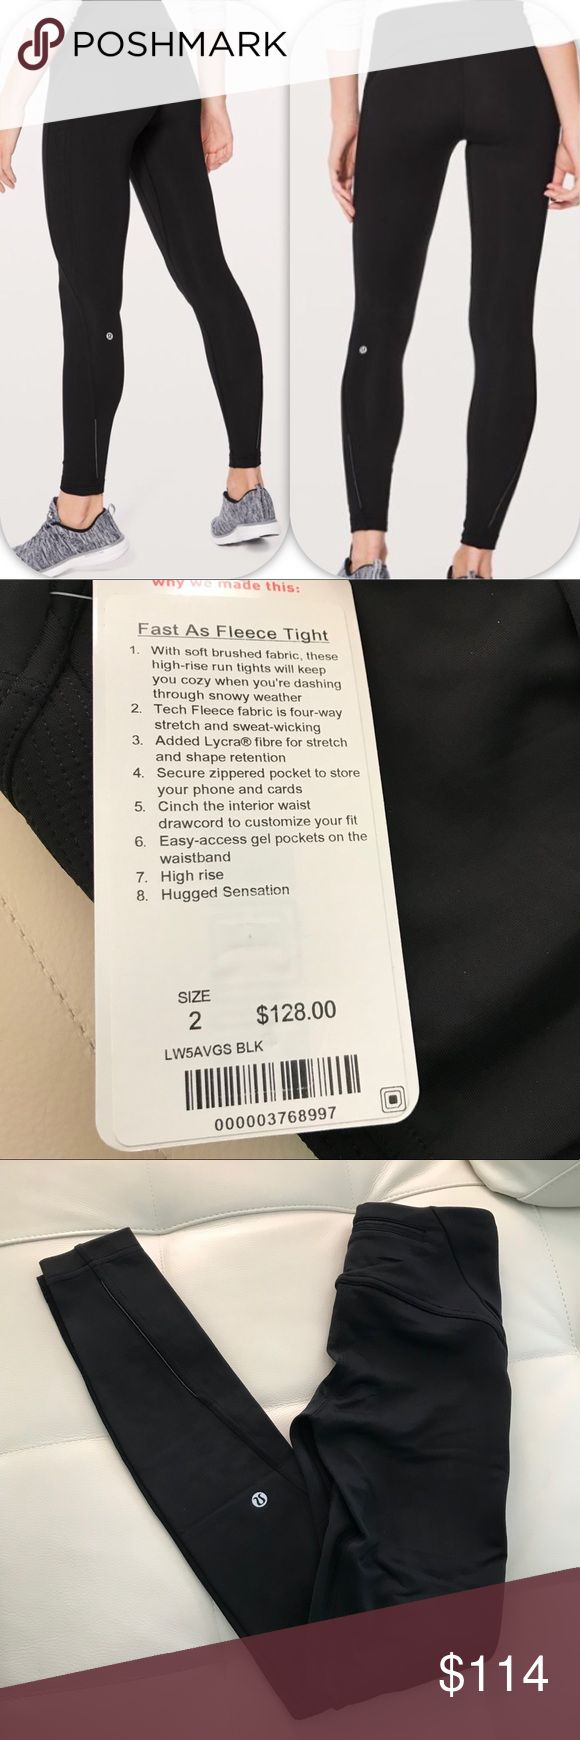 NWT BLACK LULULEMON FAST AS FLEECE TIGHT 2 or 4 Brand: Lululemon Athletica fast as fleece tight     Condition: New with tag || Size 2 or 4 || select your size  || BLACK BLK   📌NO  TRADES  🛑NO LOWBALL OFFERS  ⛔️NO RUDE COMMENTS  🚷NO MODELING  ☀️Please don't discuss prices in the comment box. Make a reasonable offer and I'll either counter, accept or decline. lululemon athletica Pants Leggings